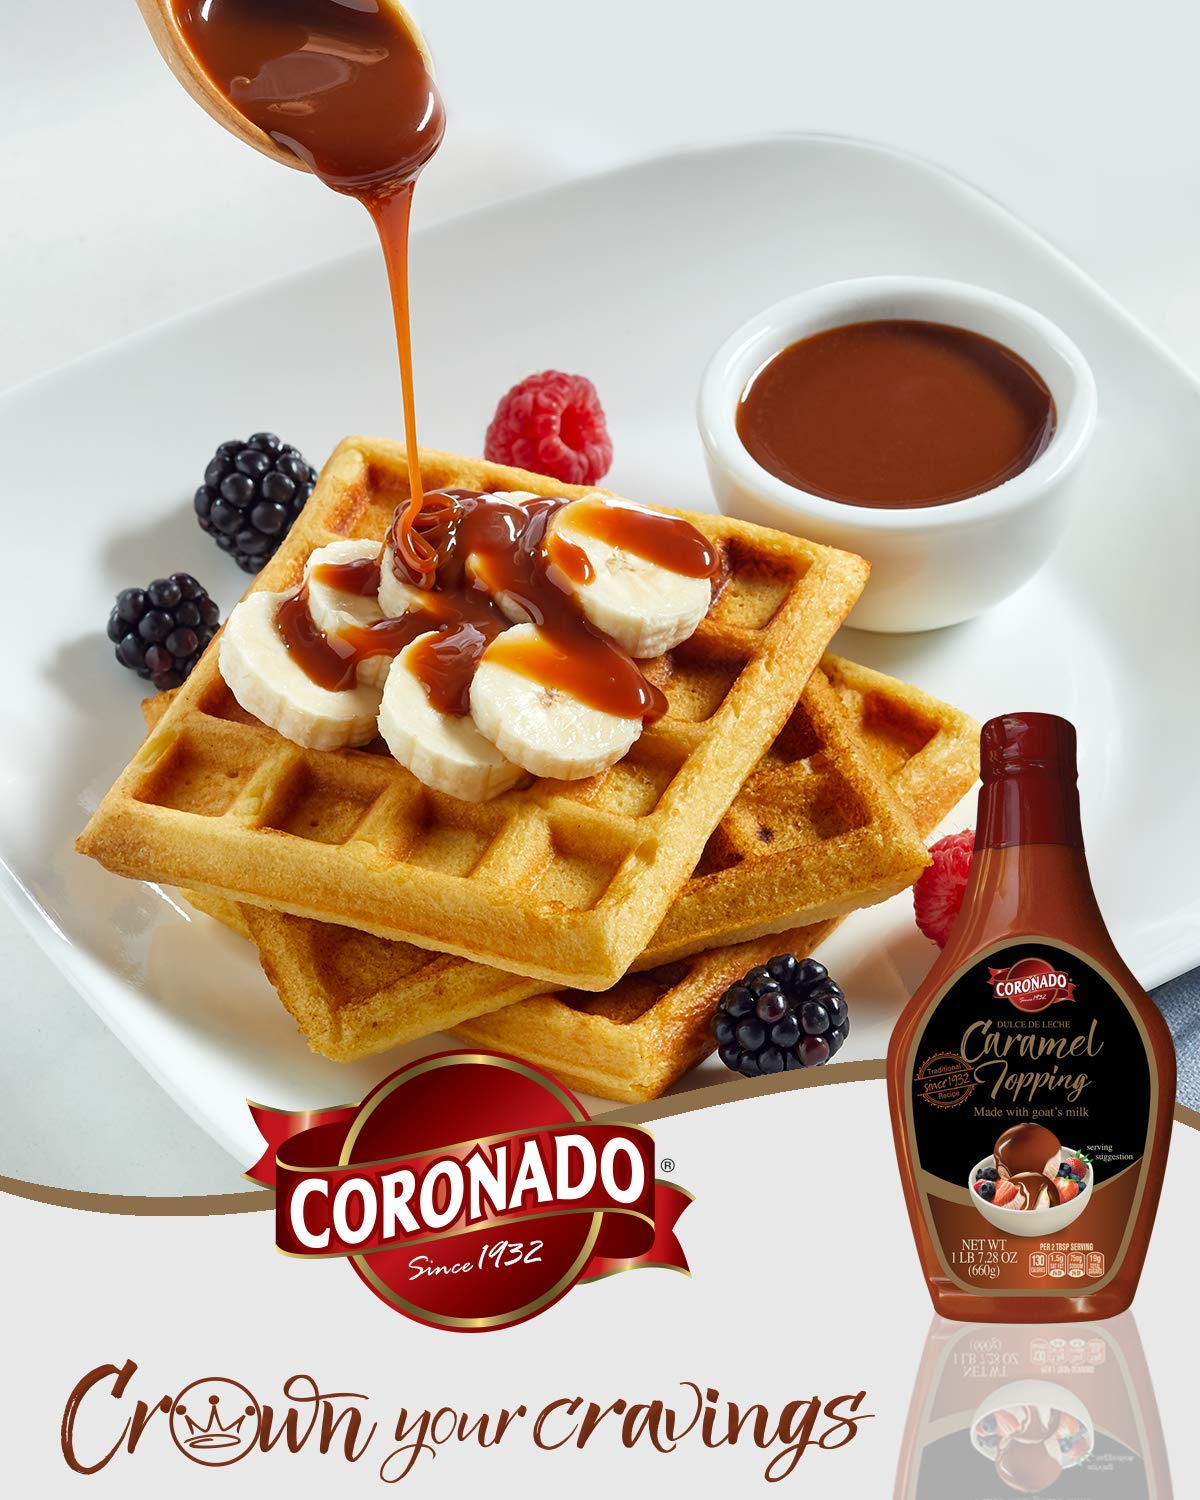 Amazon.com : CORONADO Dulce de Leche Caramel Topping 23.3oz (Cinnamon) : Grocery & Gourmet Food